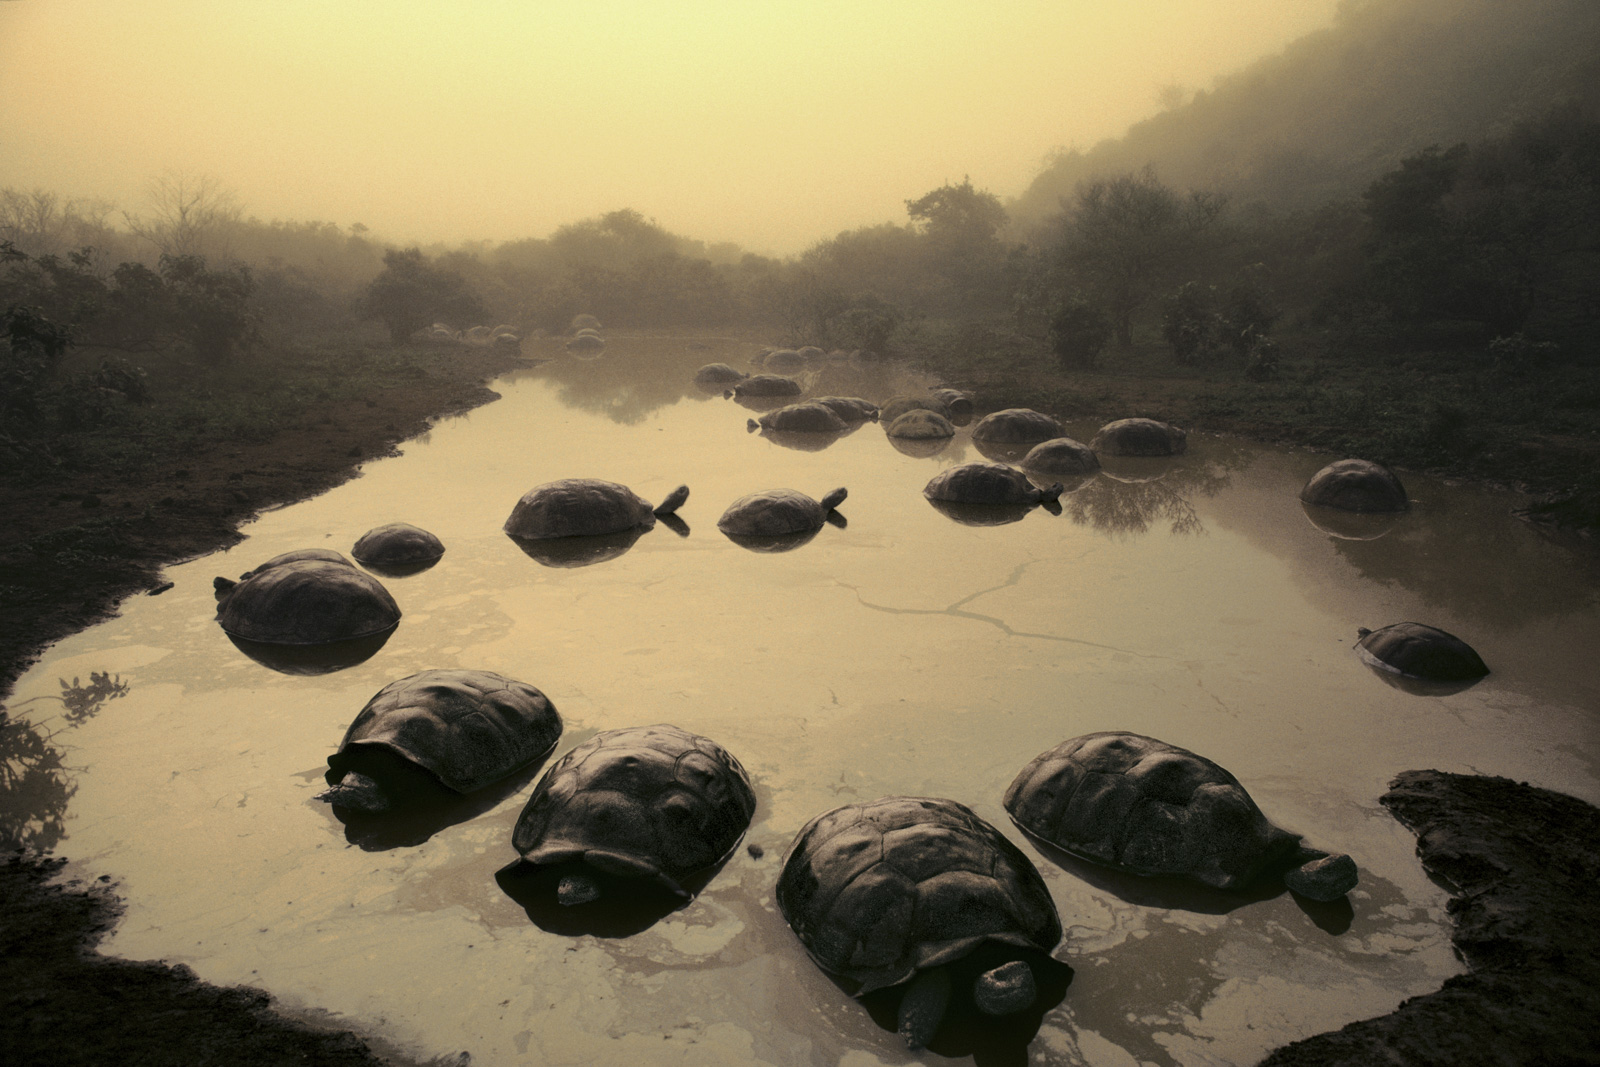 Giant tortoises in pond, Alcedo Volcano, Galapagos Islands